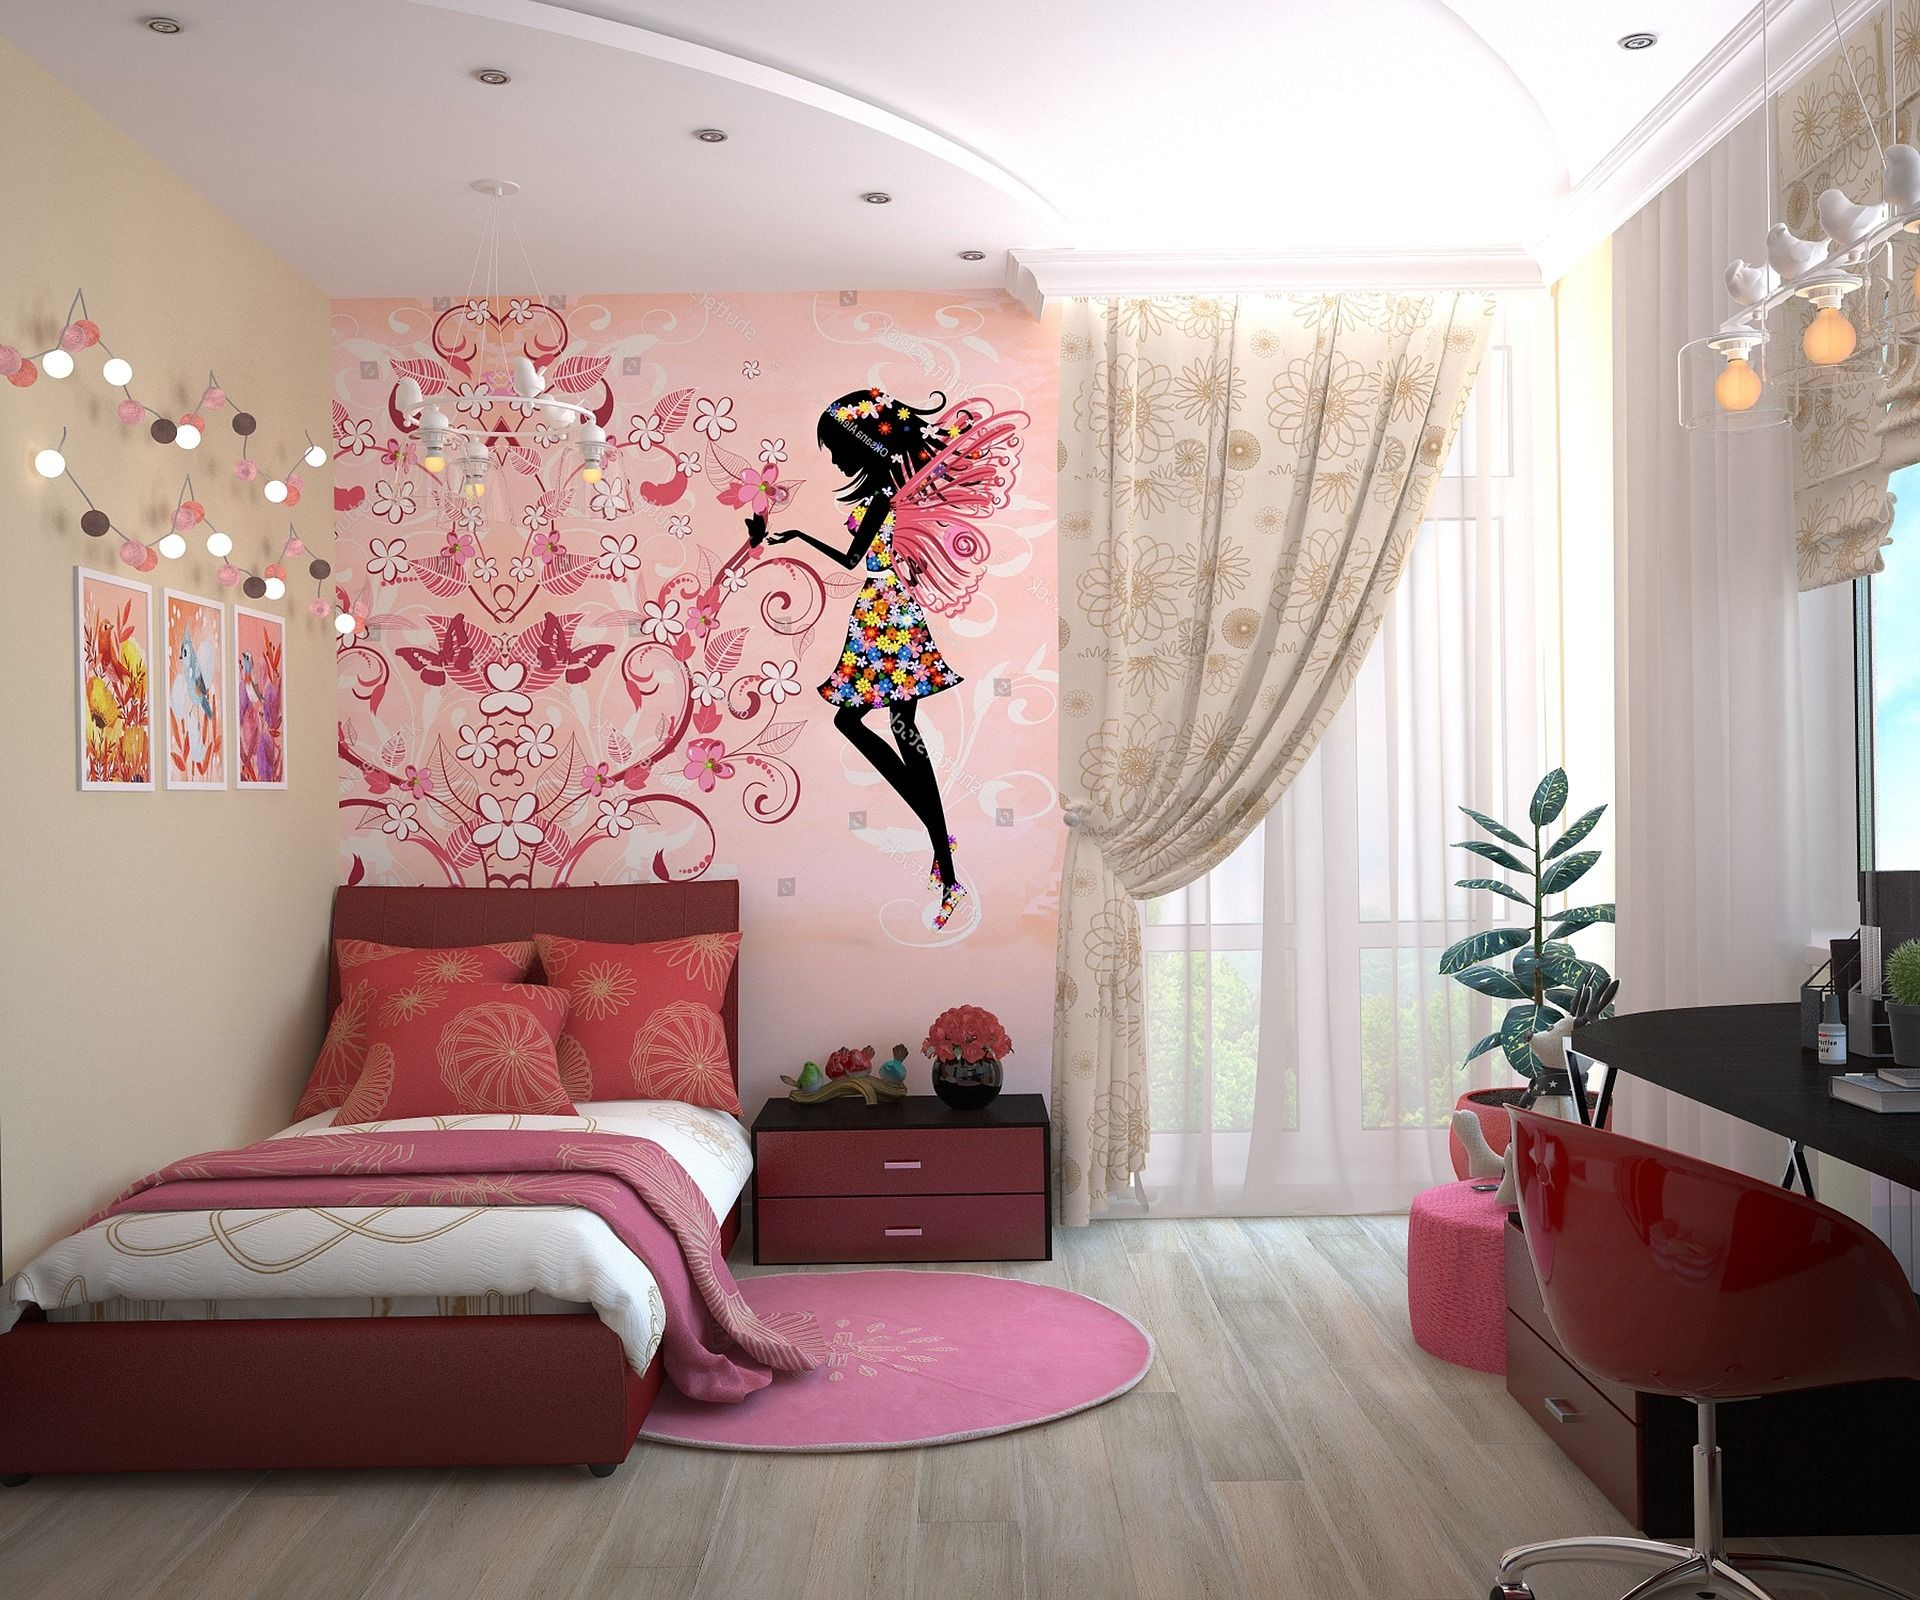 Kids Room Wall Ideas: Wall Art Décor Ideas For Kids Room